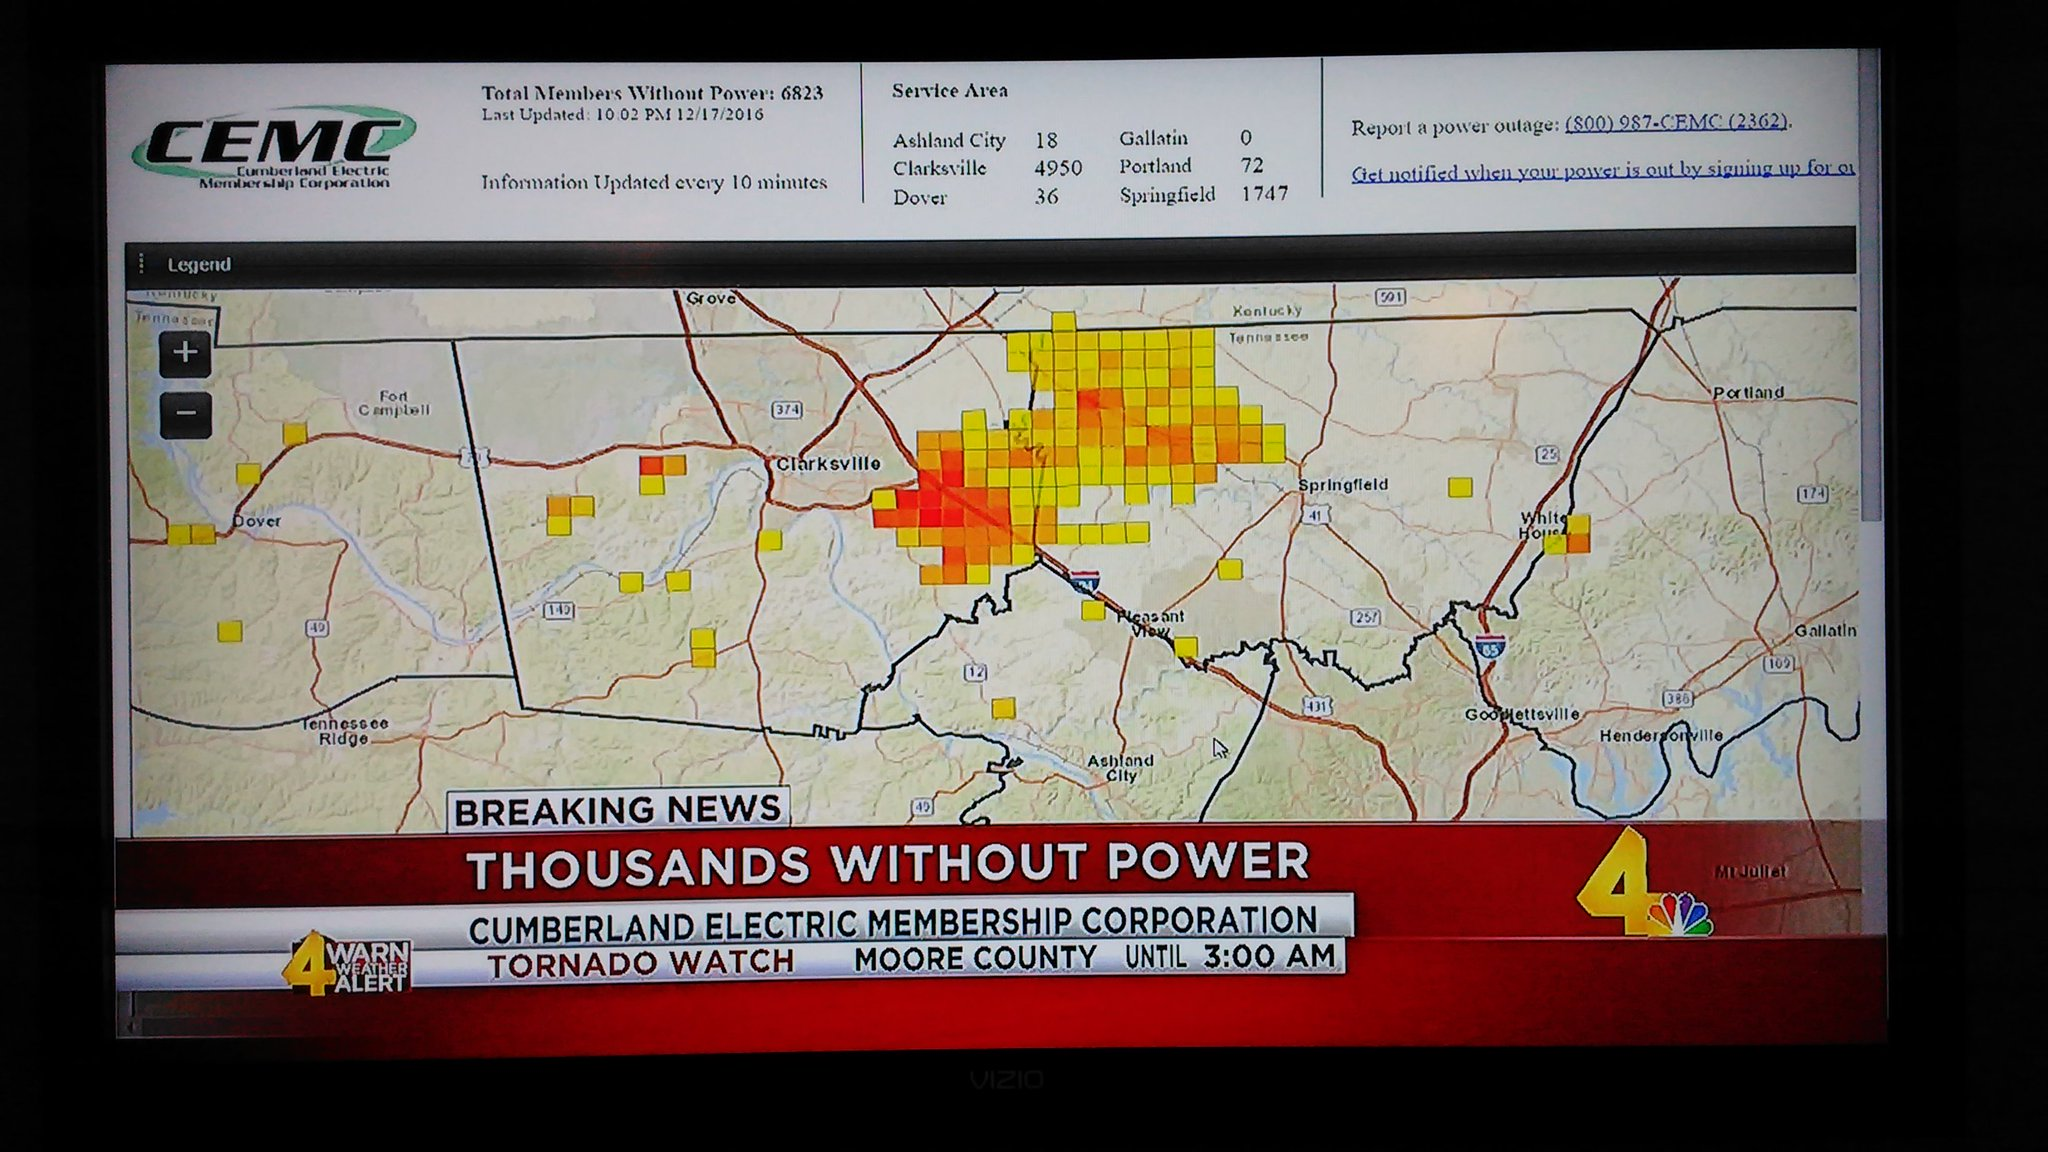 David Speight On Twitter Cemc Outage Map Featured On Wsmv Tonite